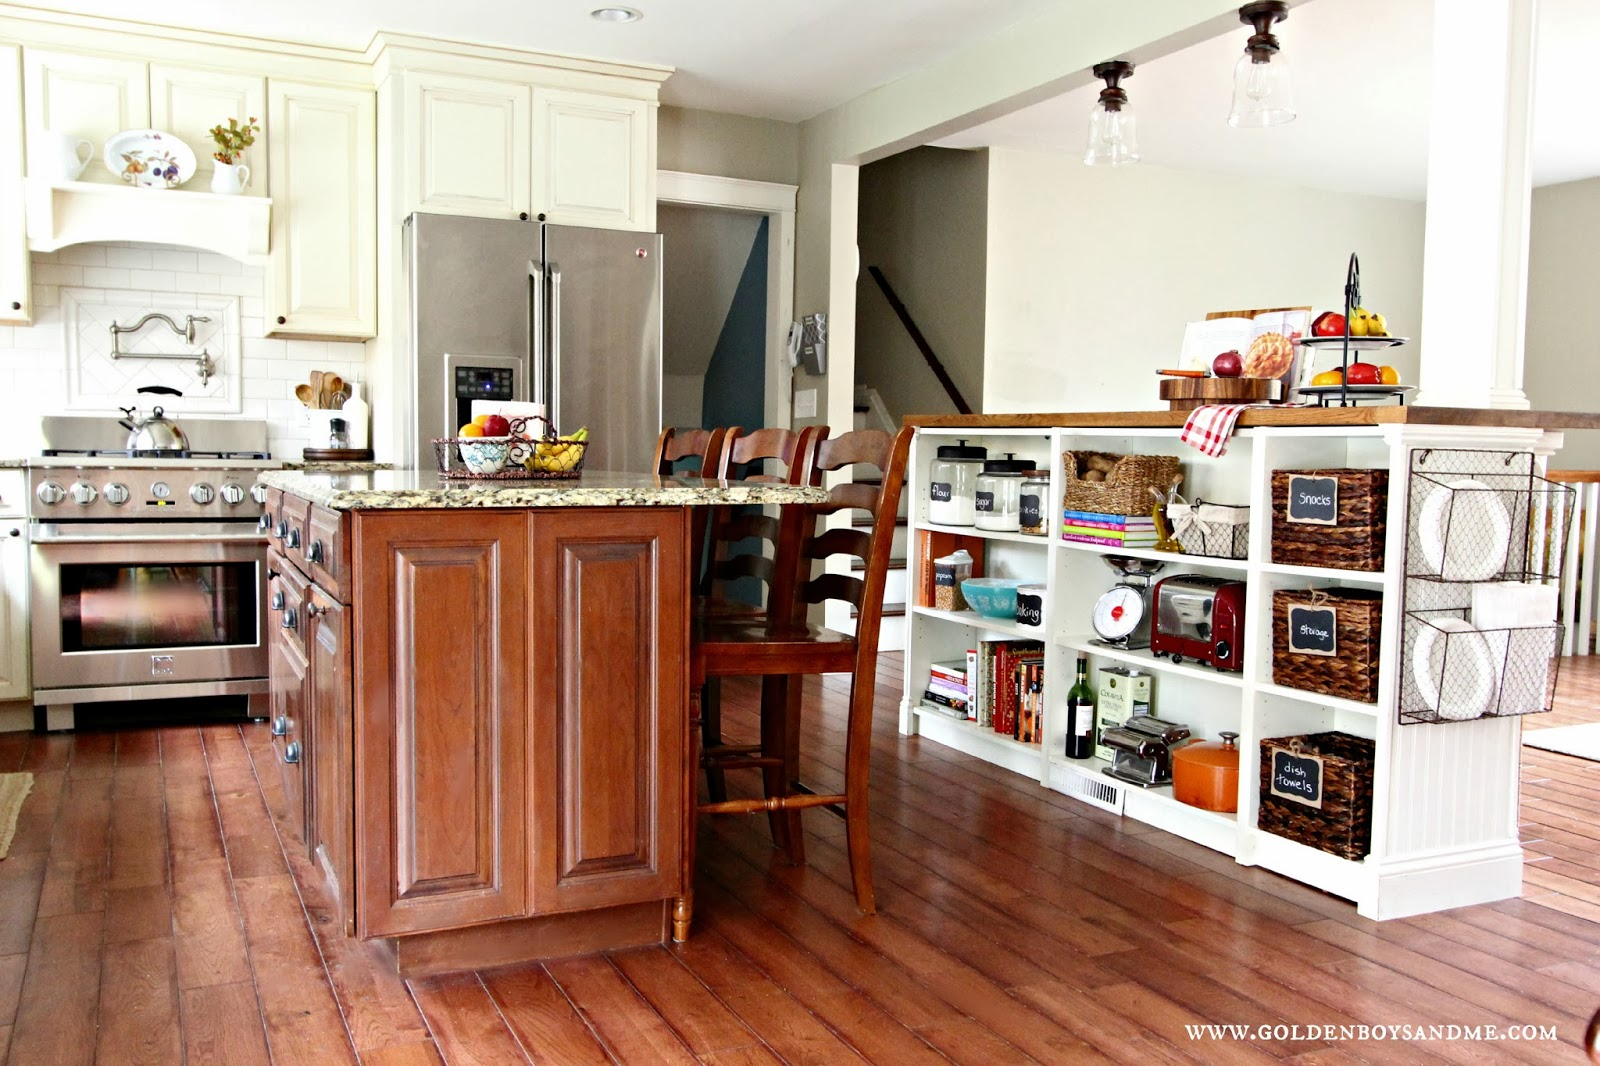 Amazing Kitchen Island With Bookshelf #10: Ikea Hack Billy Bookshelves Kitchen Island Storage With Butcher Block And  Bead Board-www.